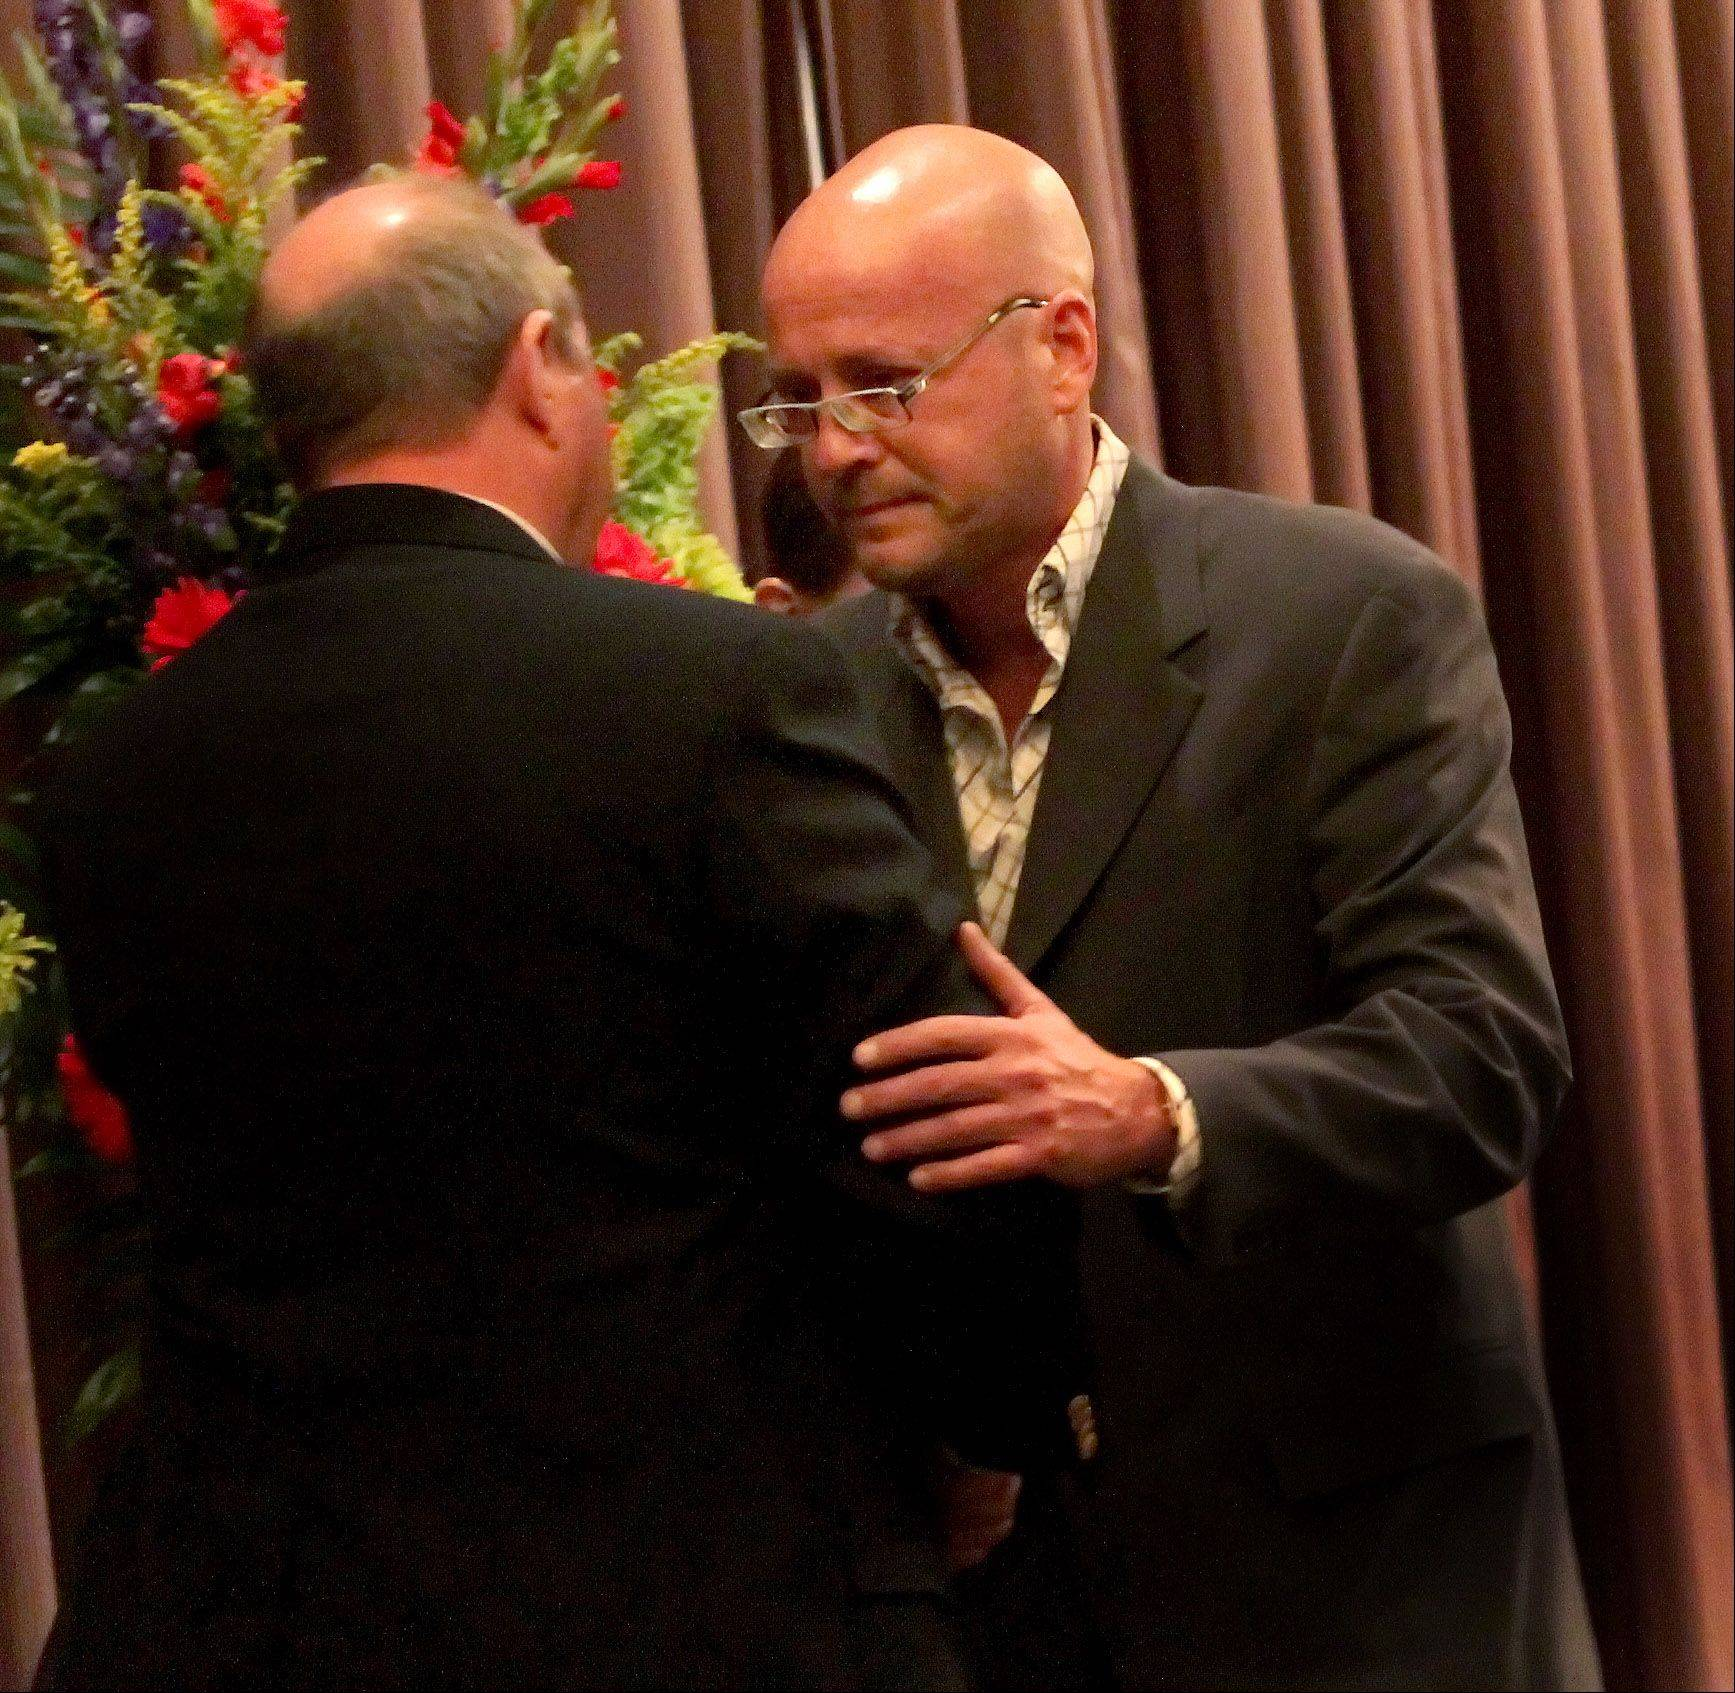 Steven Grubert of Downers Grove hugs Julio D'Alessandro, left, of St. Charles after both spoke during a memorial ceremony Thursday in Willowbrook for Grubert's cousin Randy Suchy of Naperville. Randy died Friday while saving a 12-year-old boy from drowning.